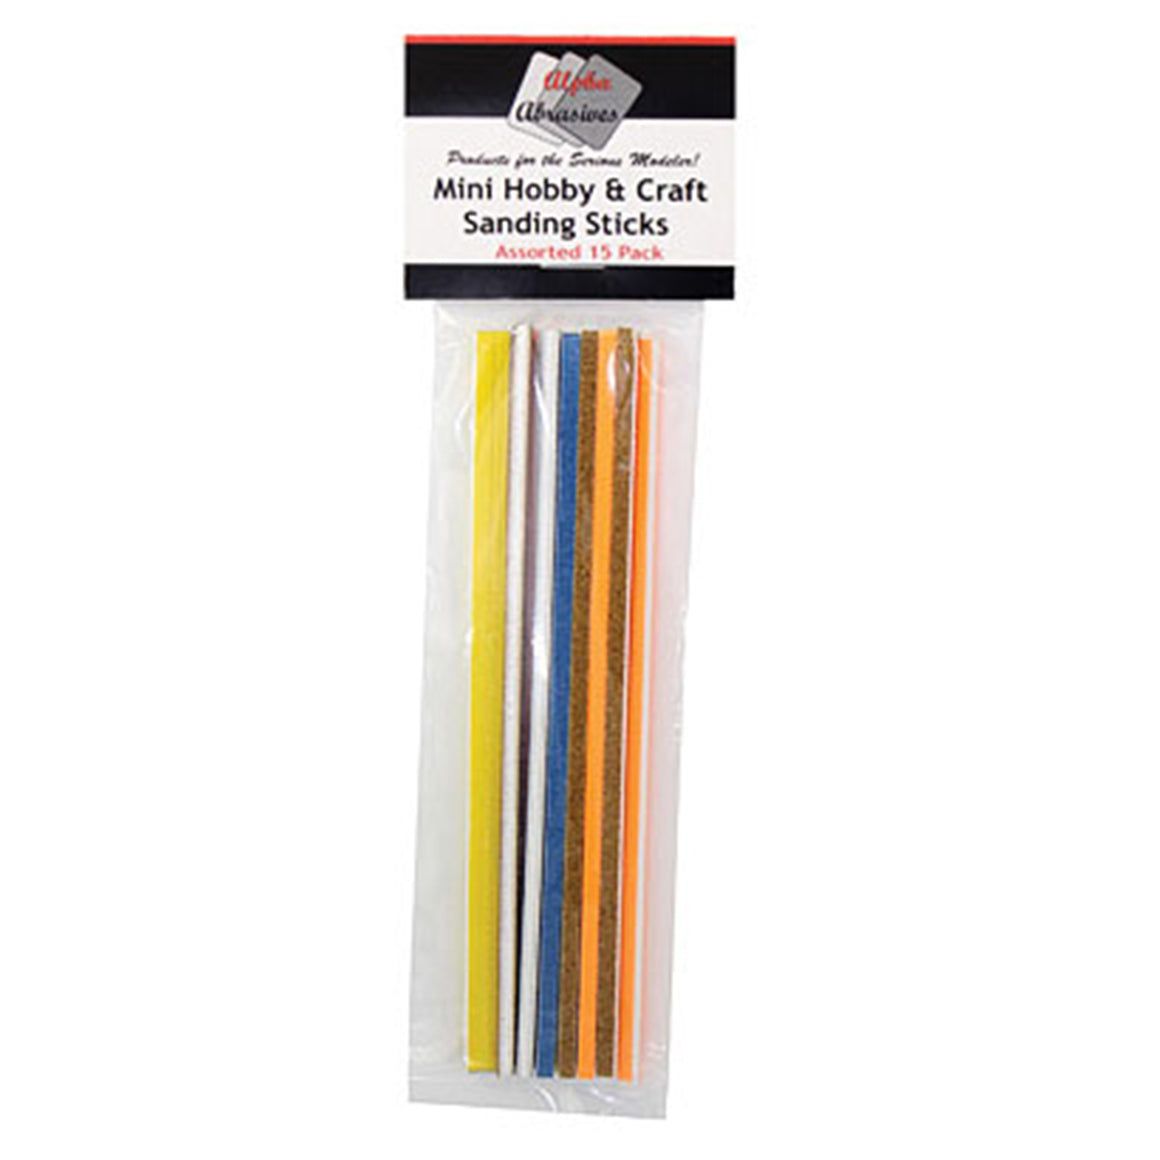 Mini Hobby and Craft Sanding Sticks - 15 Pack